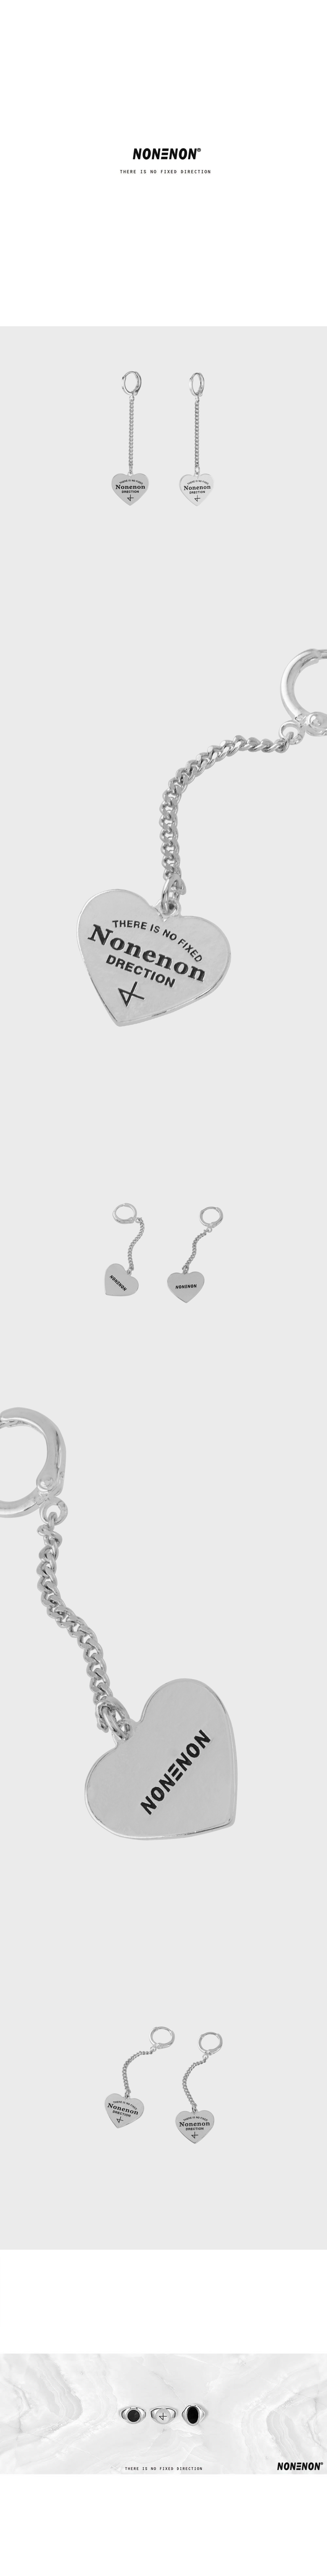 35 NEW LOGO LOVE CHAIN EAR (4).jpg